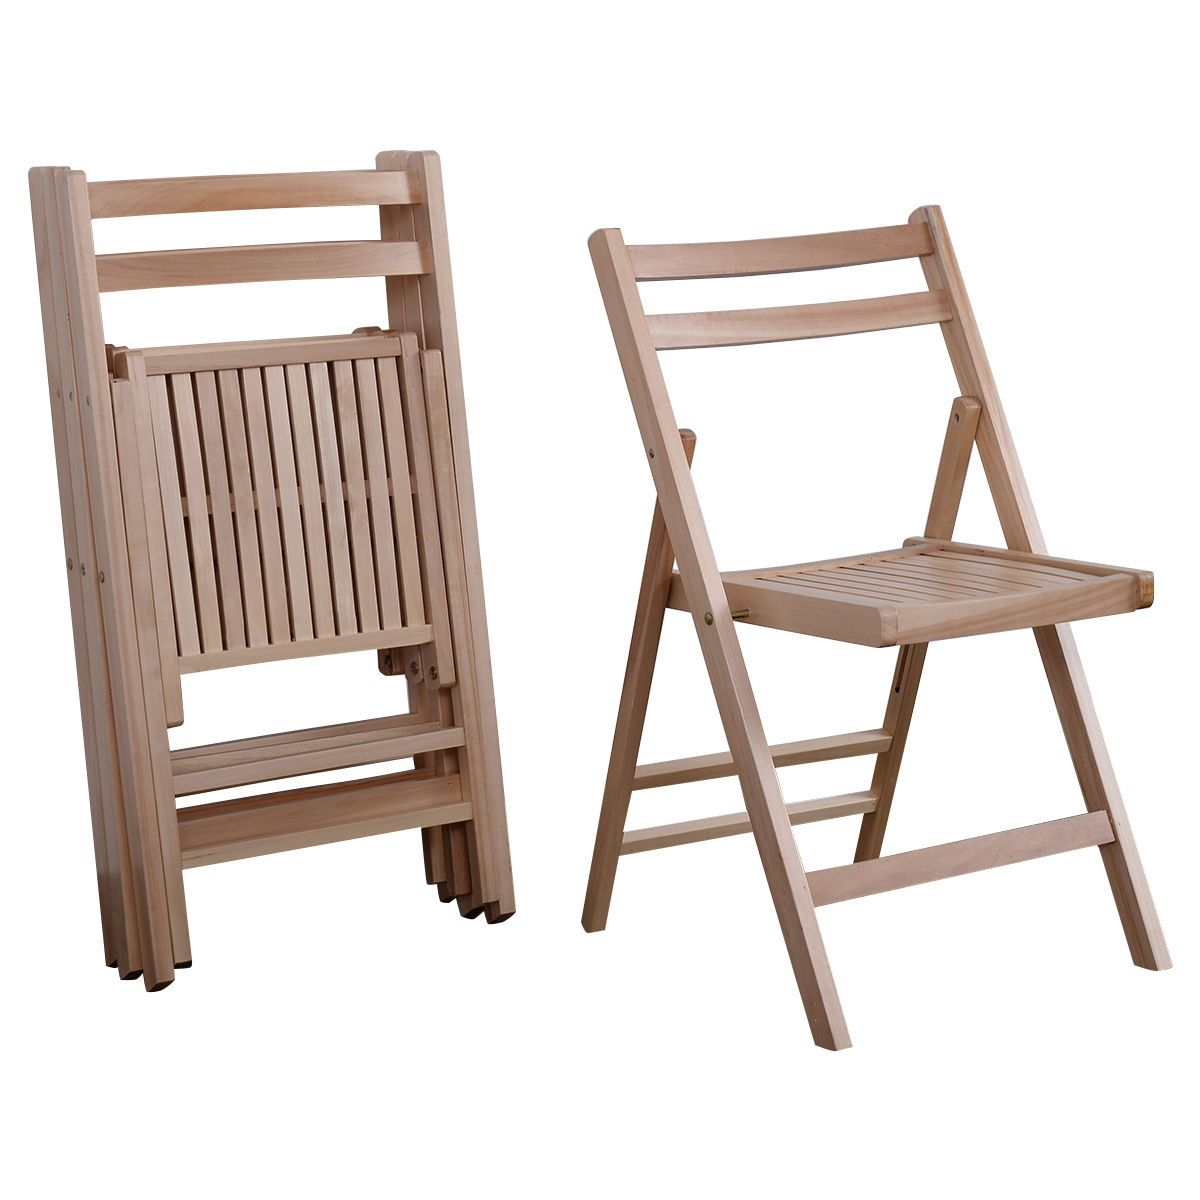 Set of wood folding chairs natural finish patio garden backyard